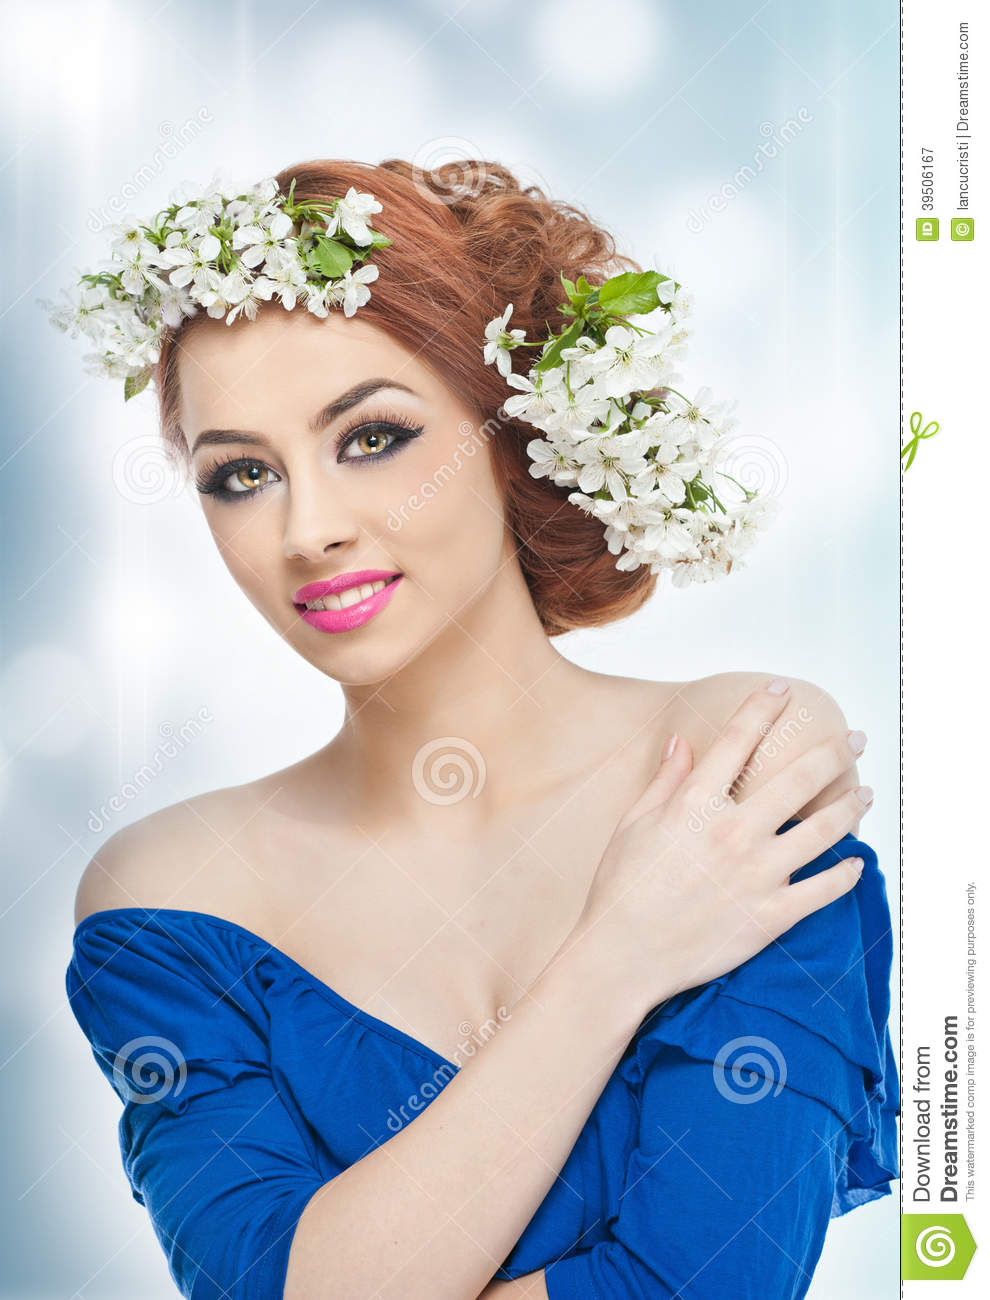 young woman with spring white flowers